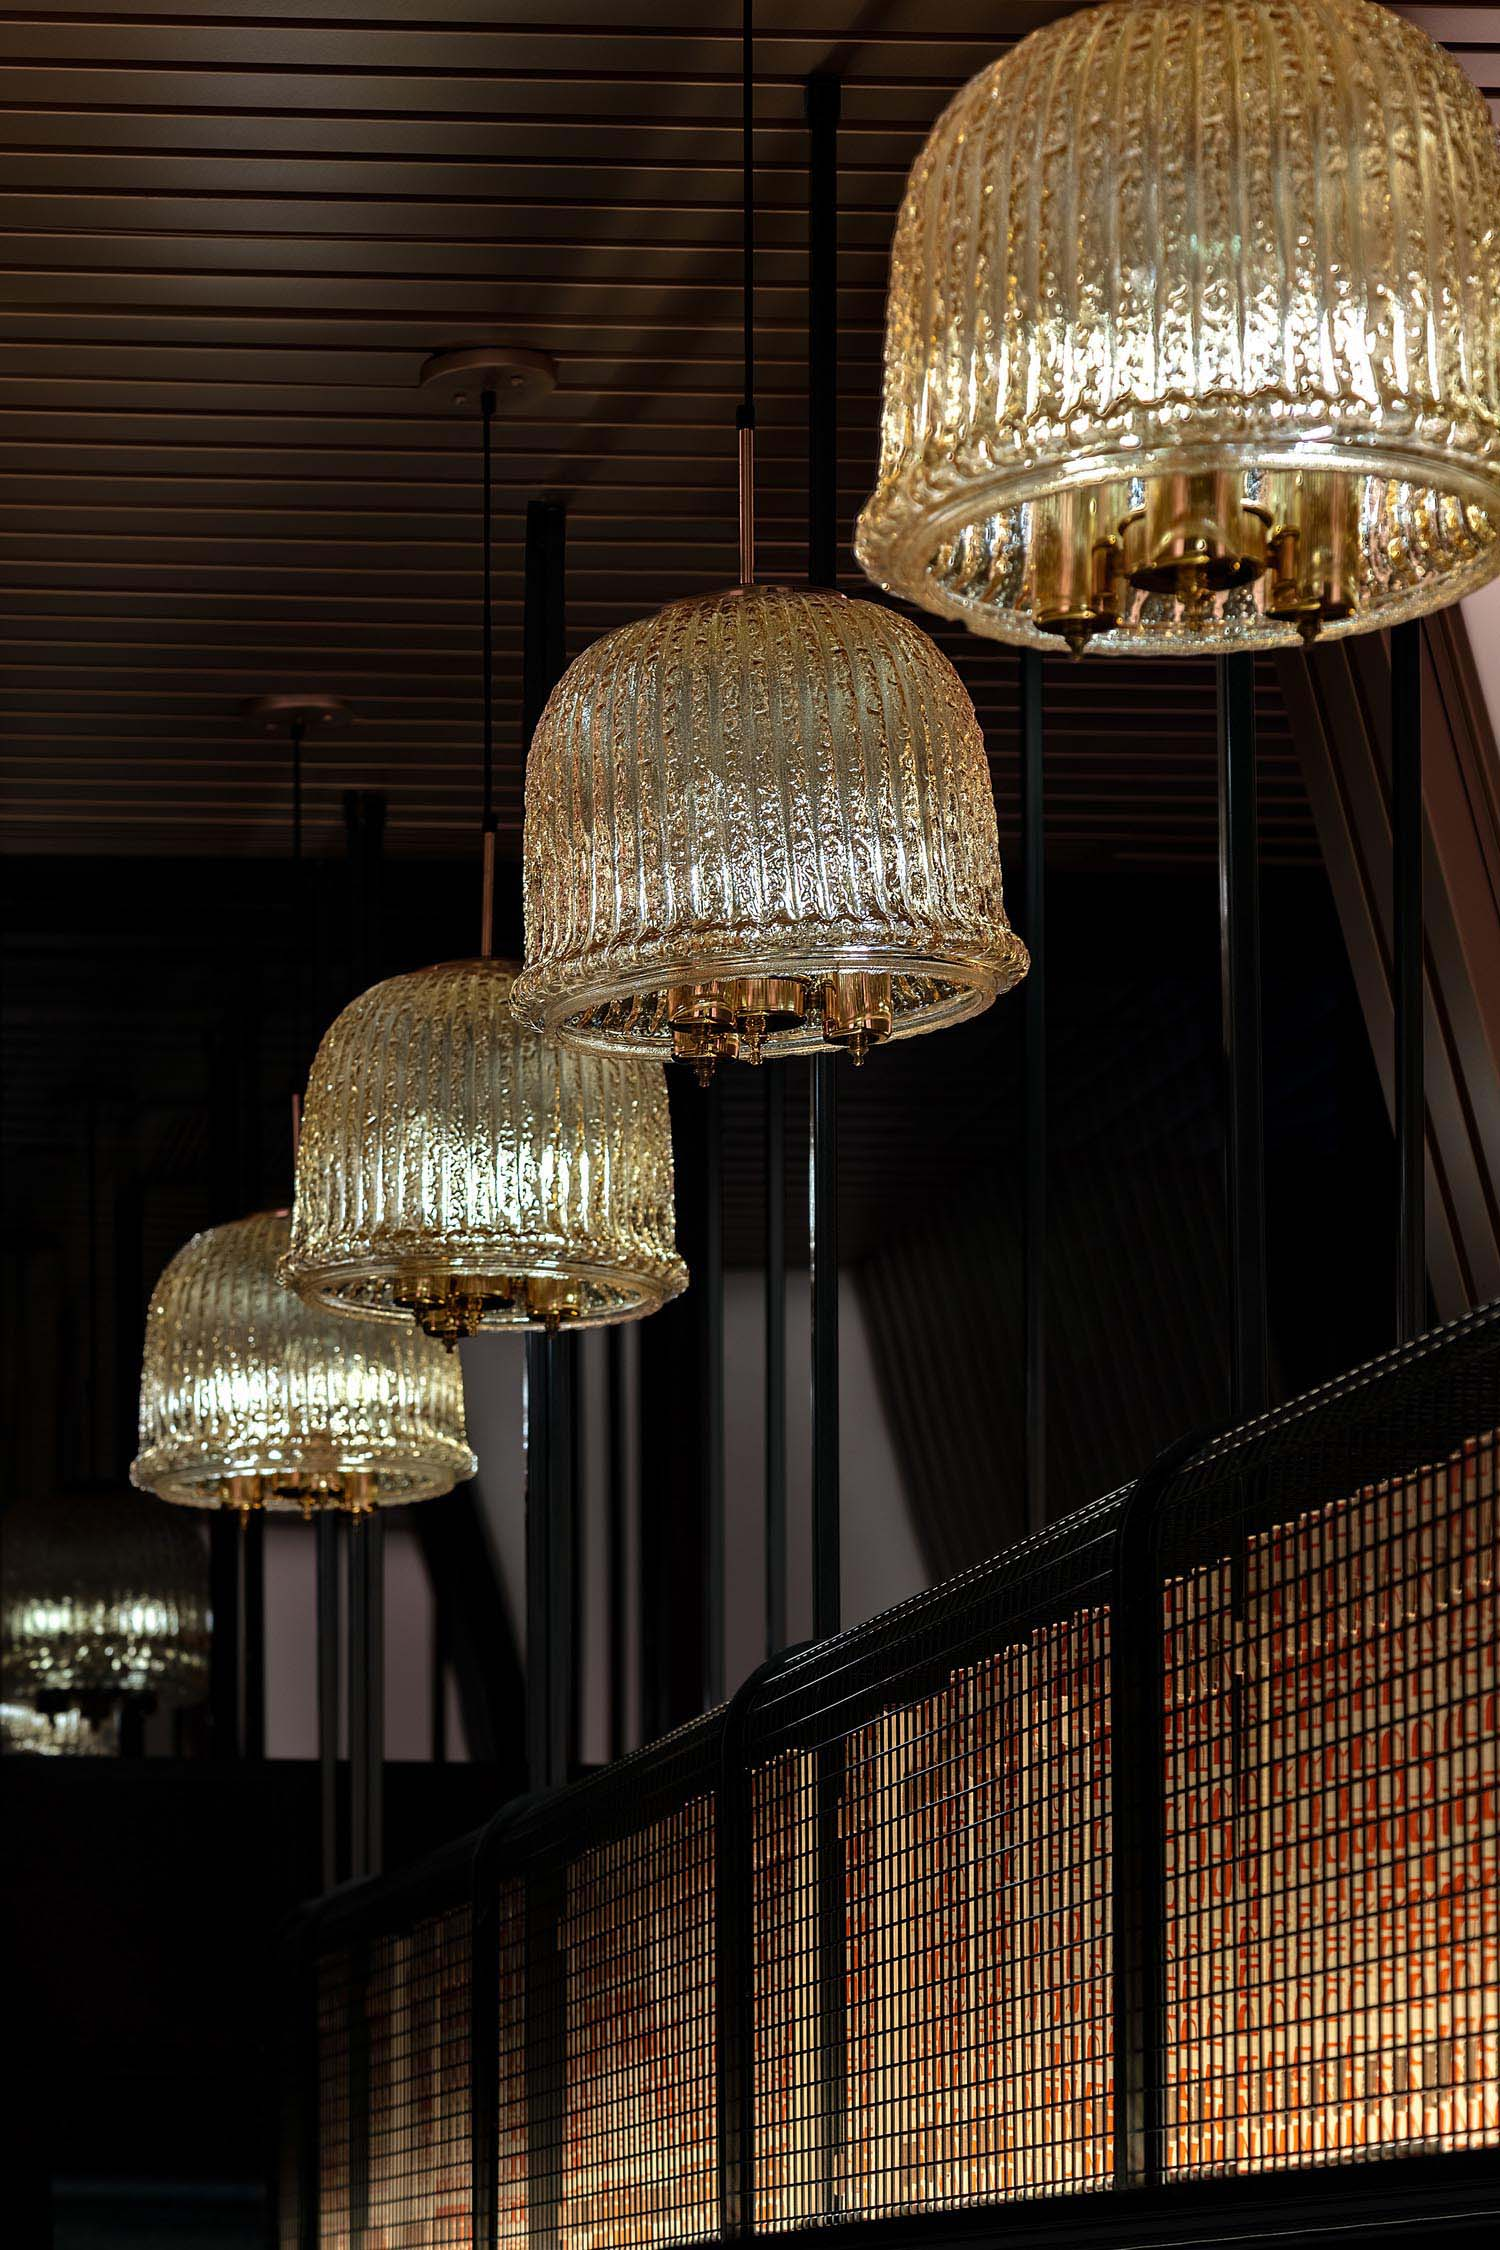 Glass pendant lights featured in a restaurant.